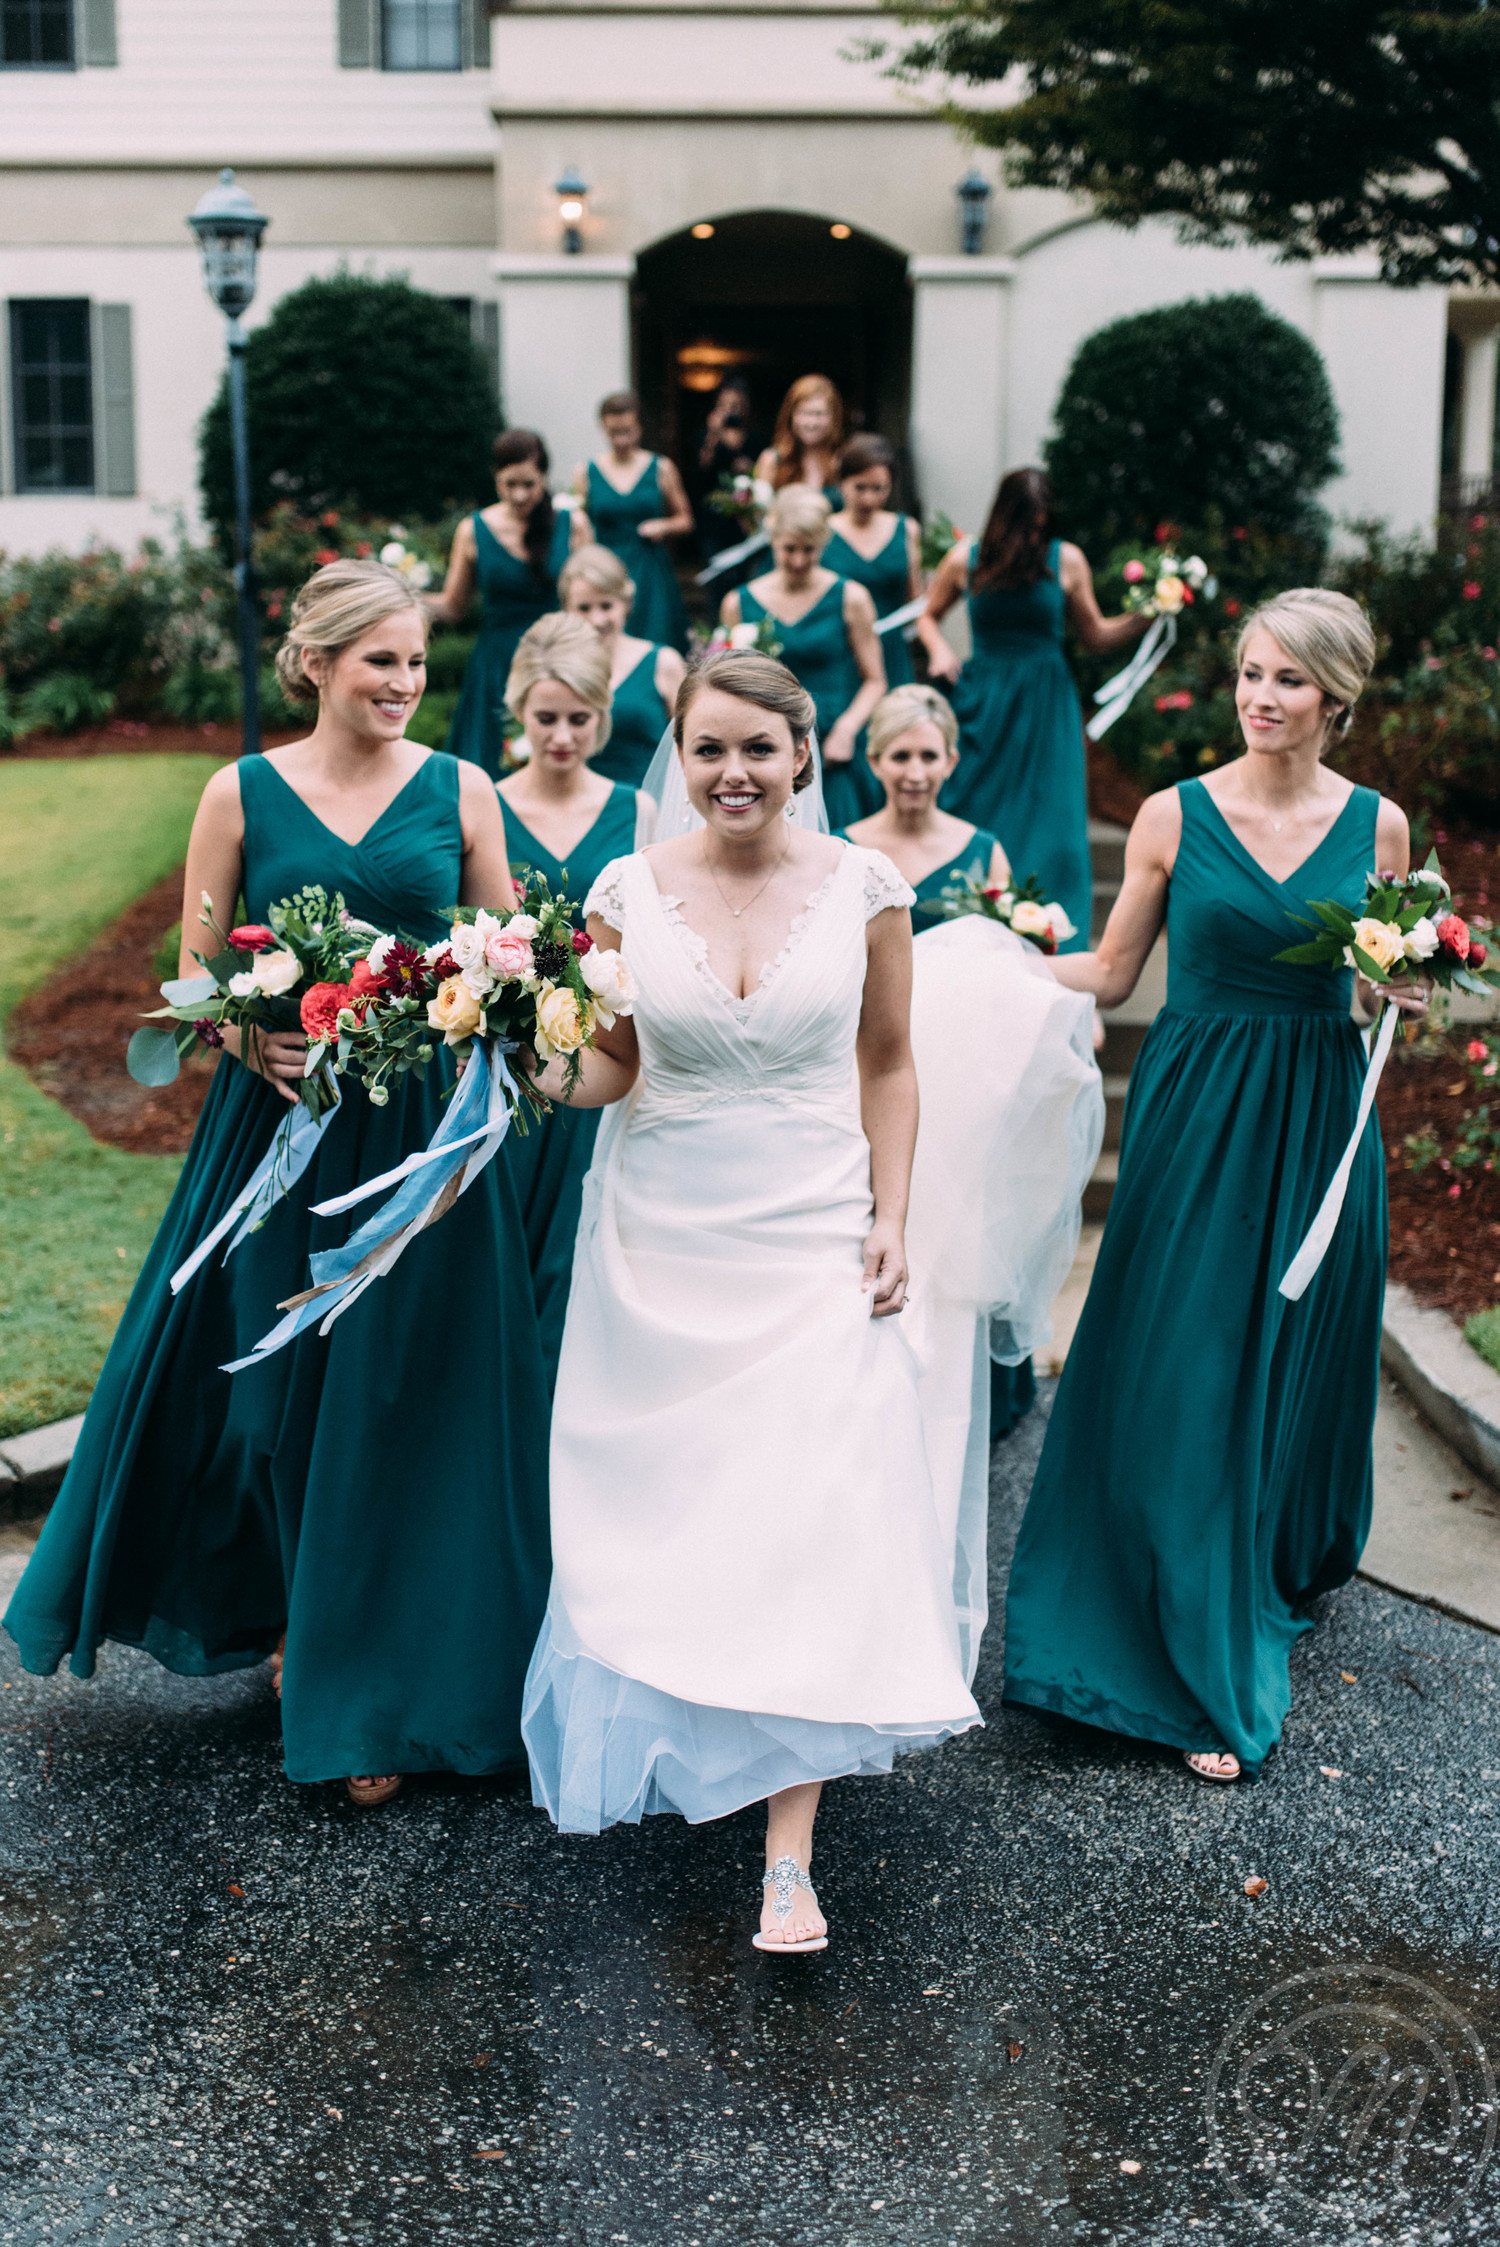 mary-claire-photography-ivory-and-beau-bridal-boutique-savannah-wedding-dresses-savannah-wedding-planner-savannah-weddings-savannah-bridal-gowns-blush-by-hayley-paige-wedding-dress-may-lace-mermaid-11.jpg